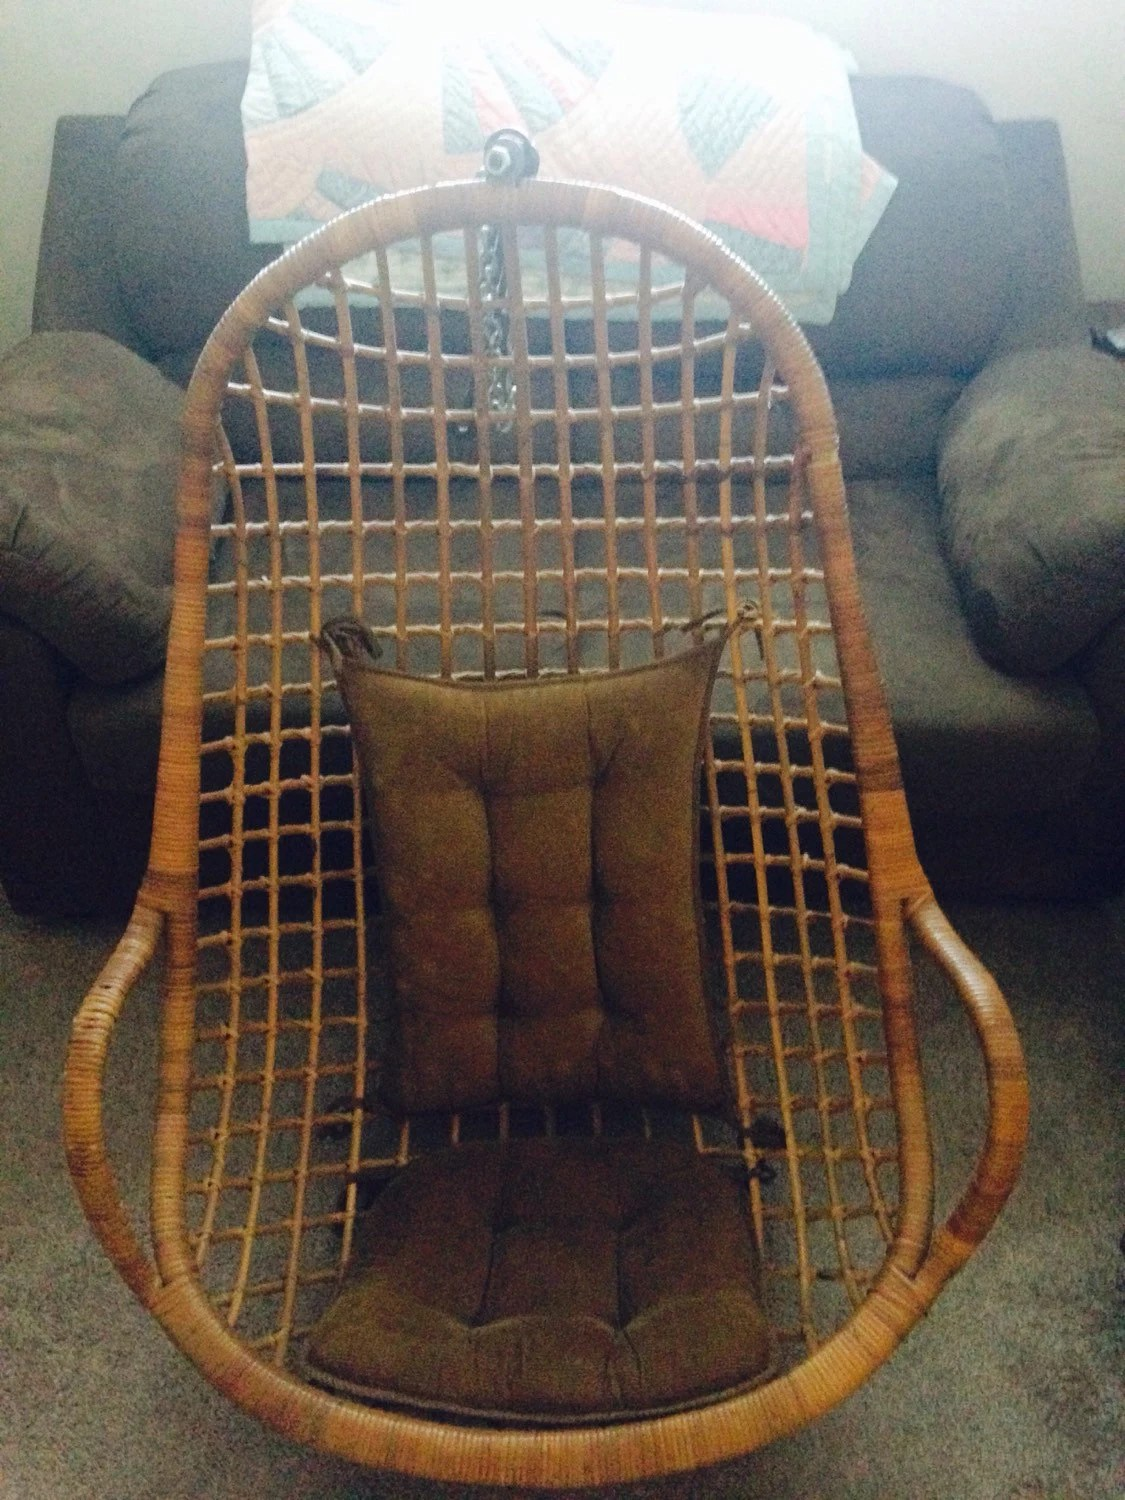 Egg Basket Chair Mid Century Modern Rattan Wicker Egg Shaped Chair Hanging